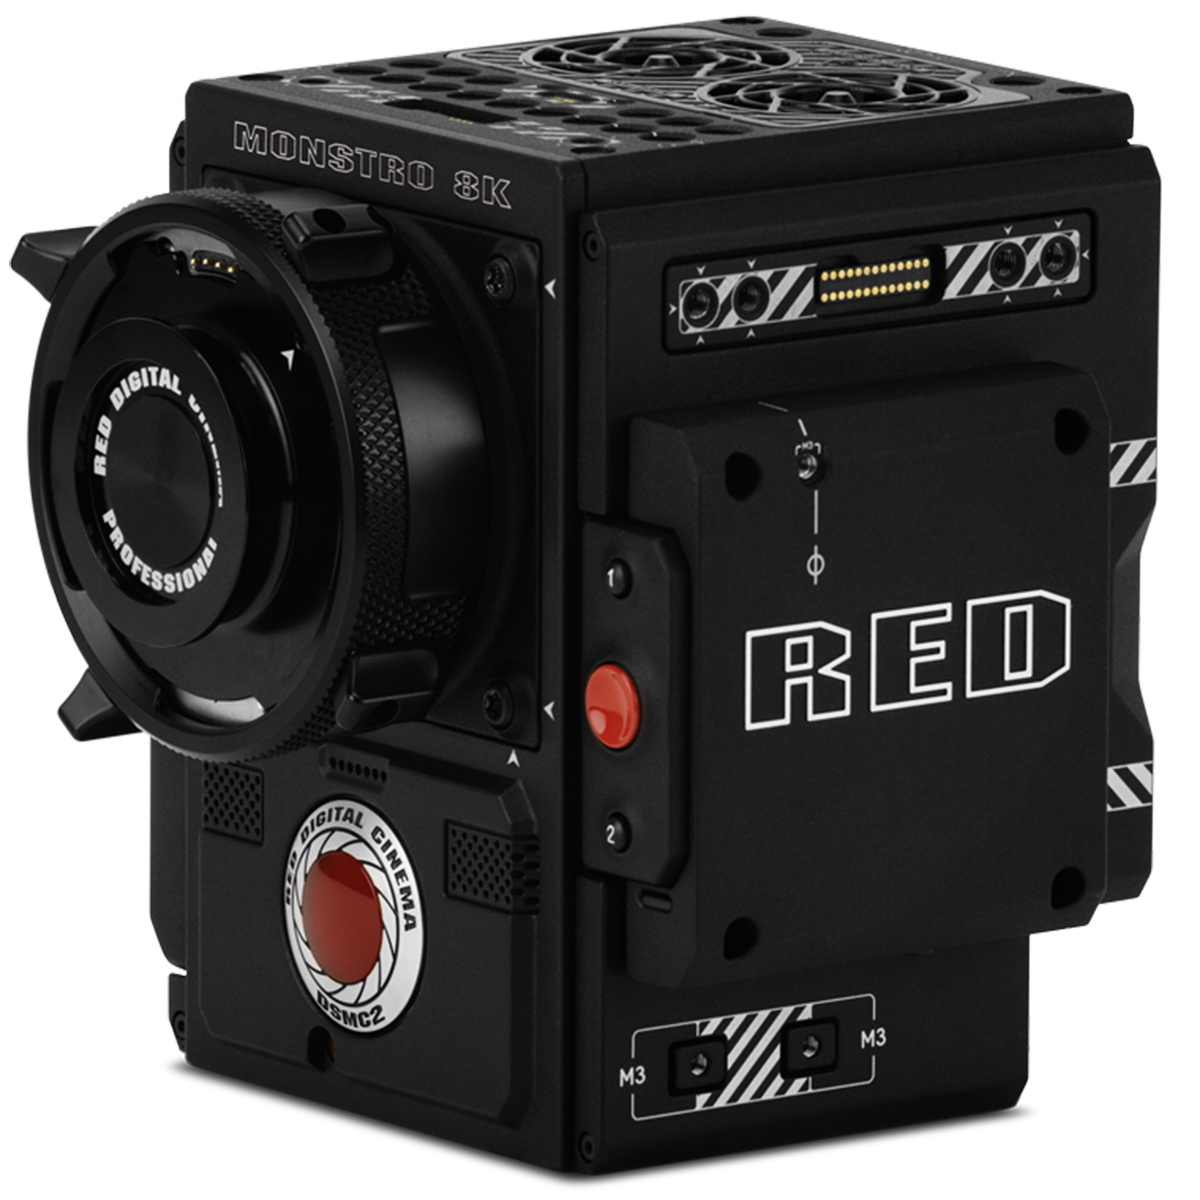 red mx camera manual operating manual guide u2022 rh astra freewayprojects com red epic camera manual red epic camera operating manual